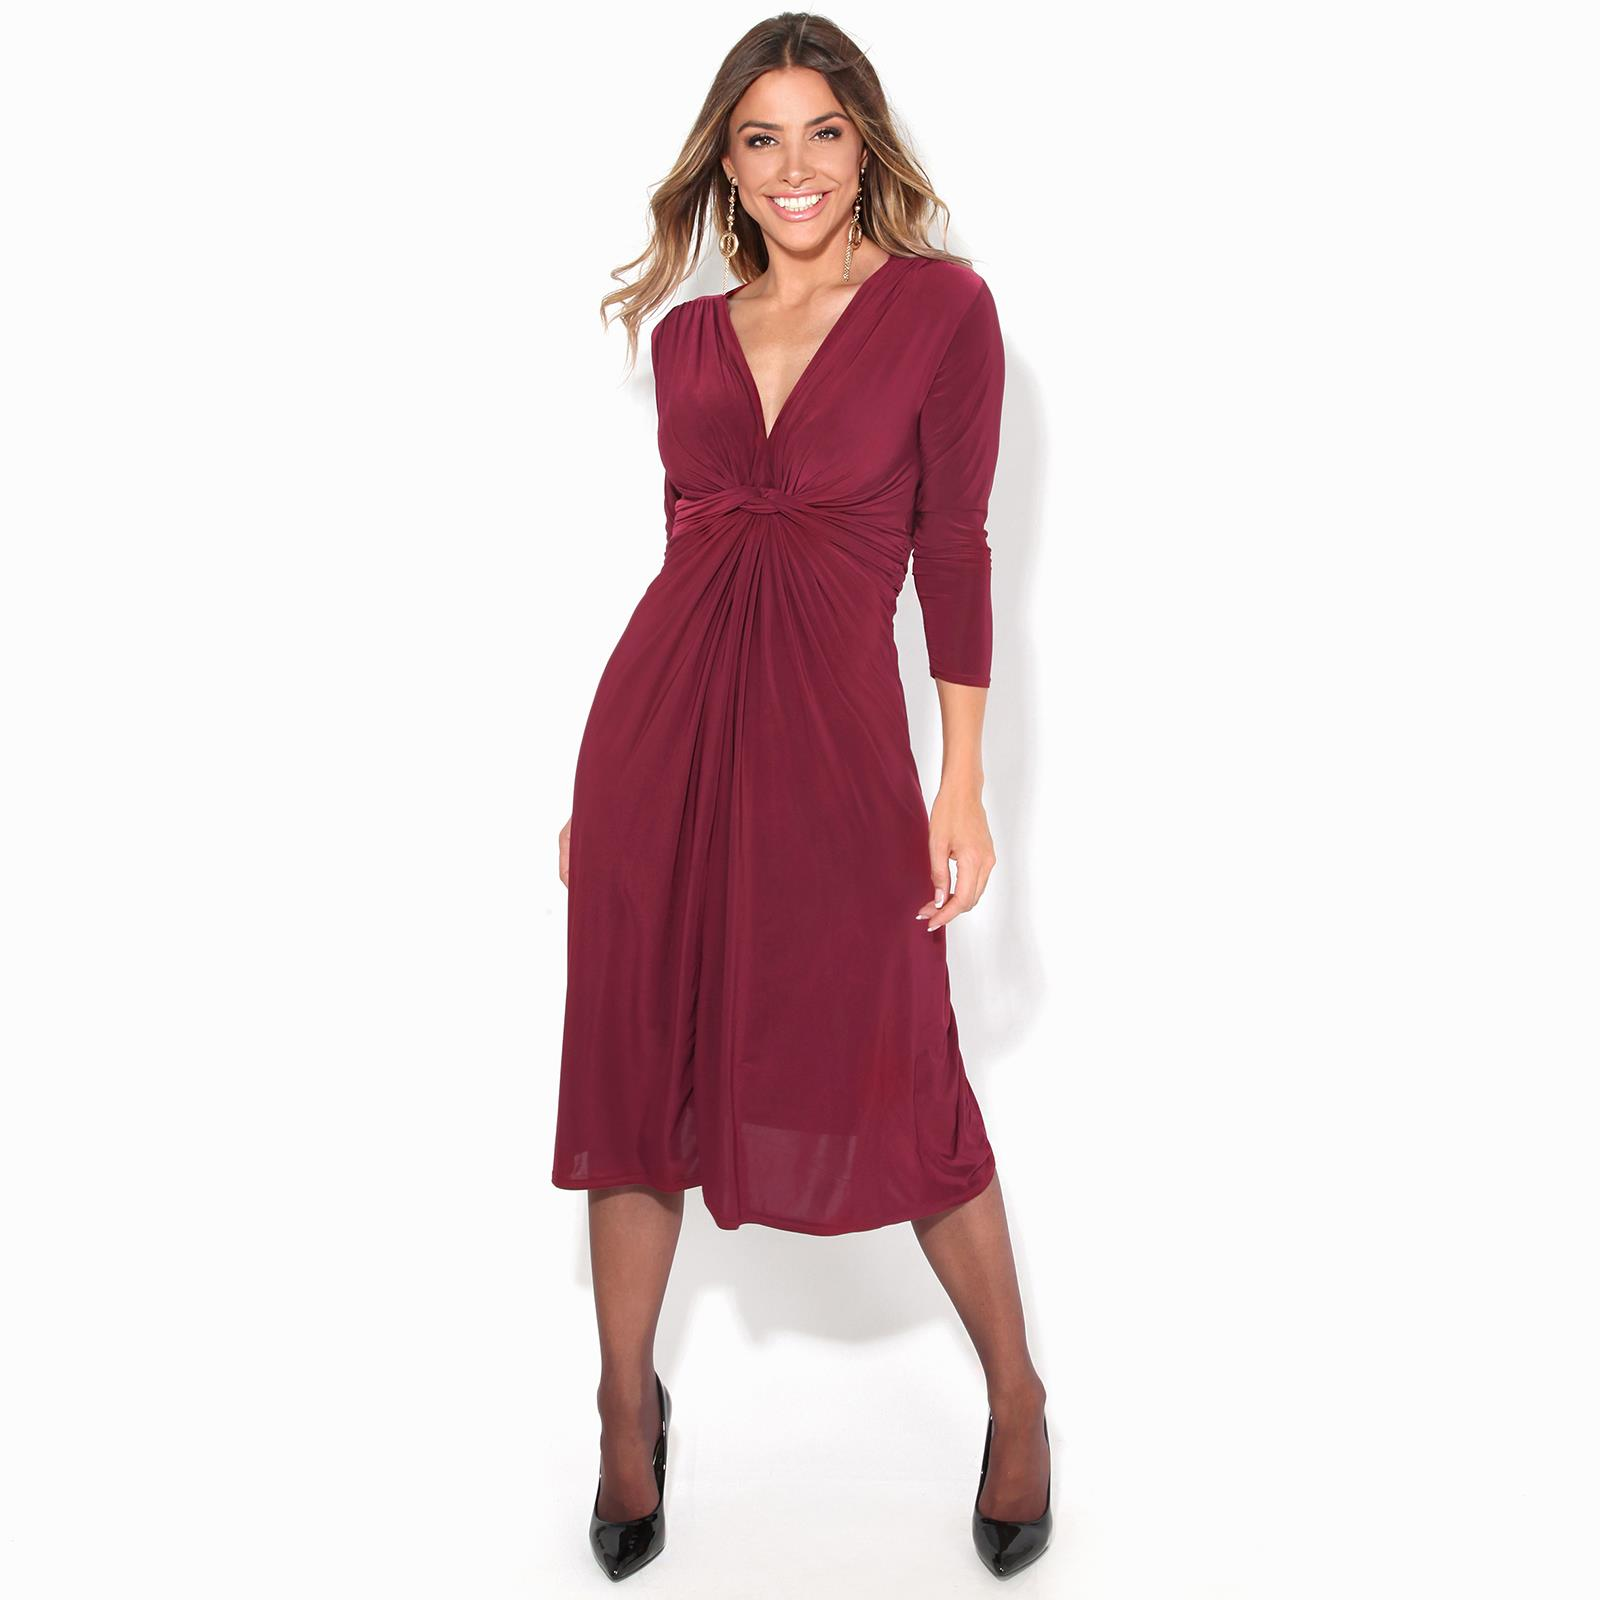 Women-Ladies-V-Neck-Midi-Dress-Knee-Long-A-Line-Skirt-3-4-Sleeve-Knot-Party-Work thumbnail 15